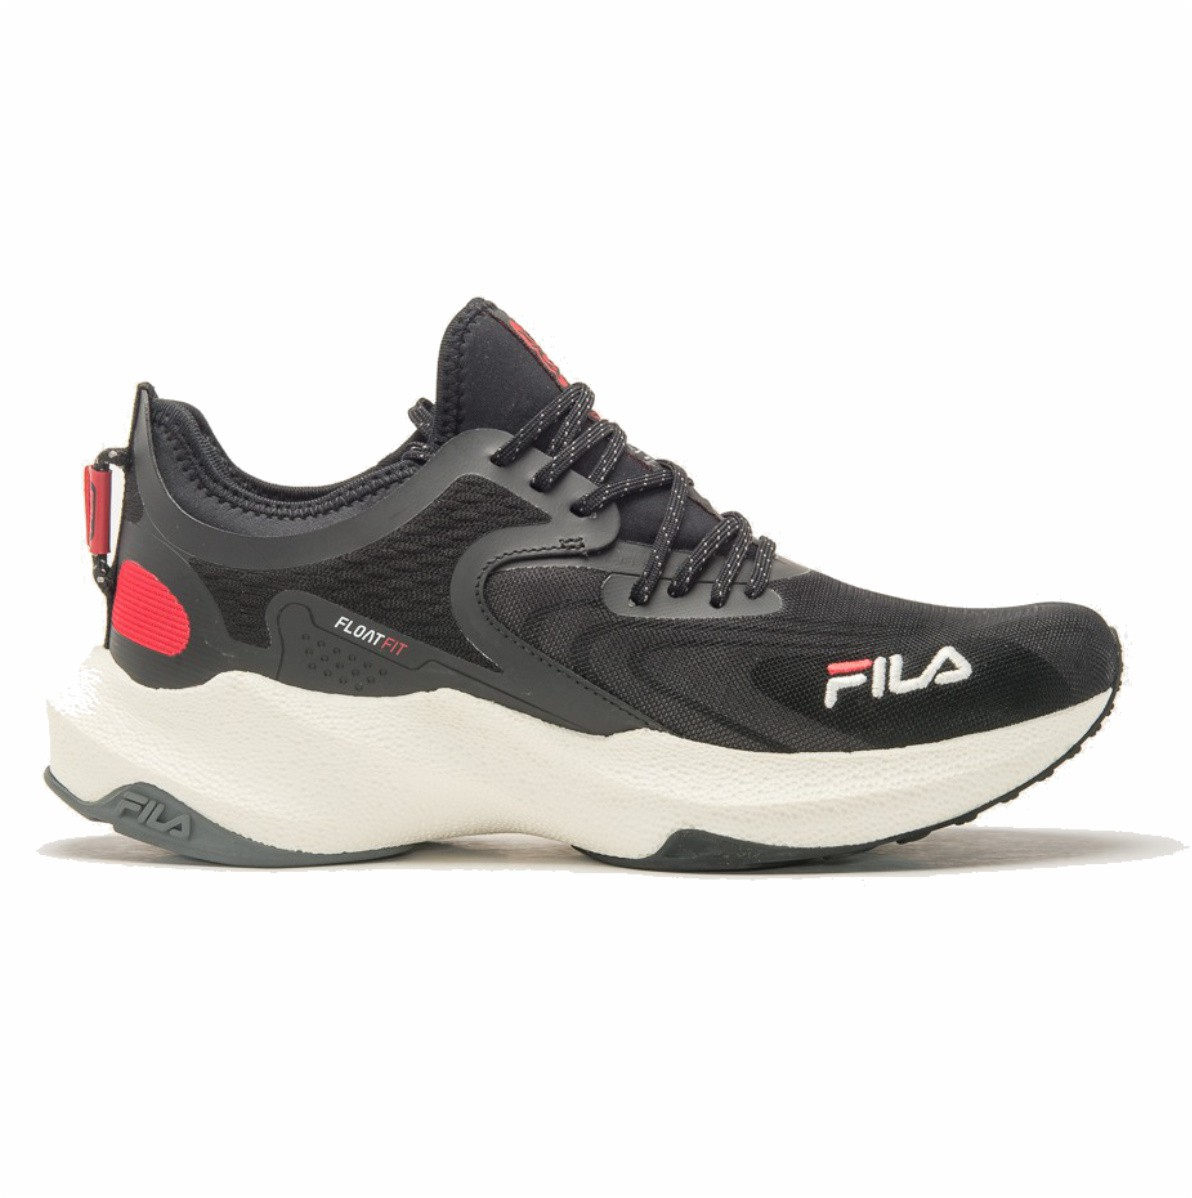 Tenis Fila Float Fit Masculino Running Trainning